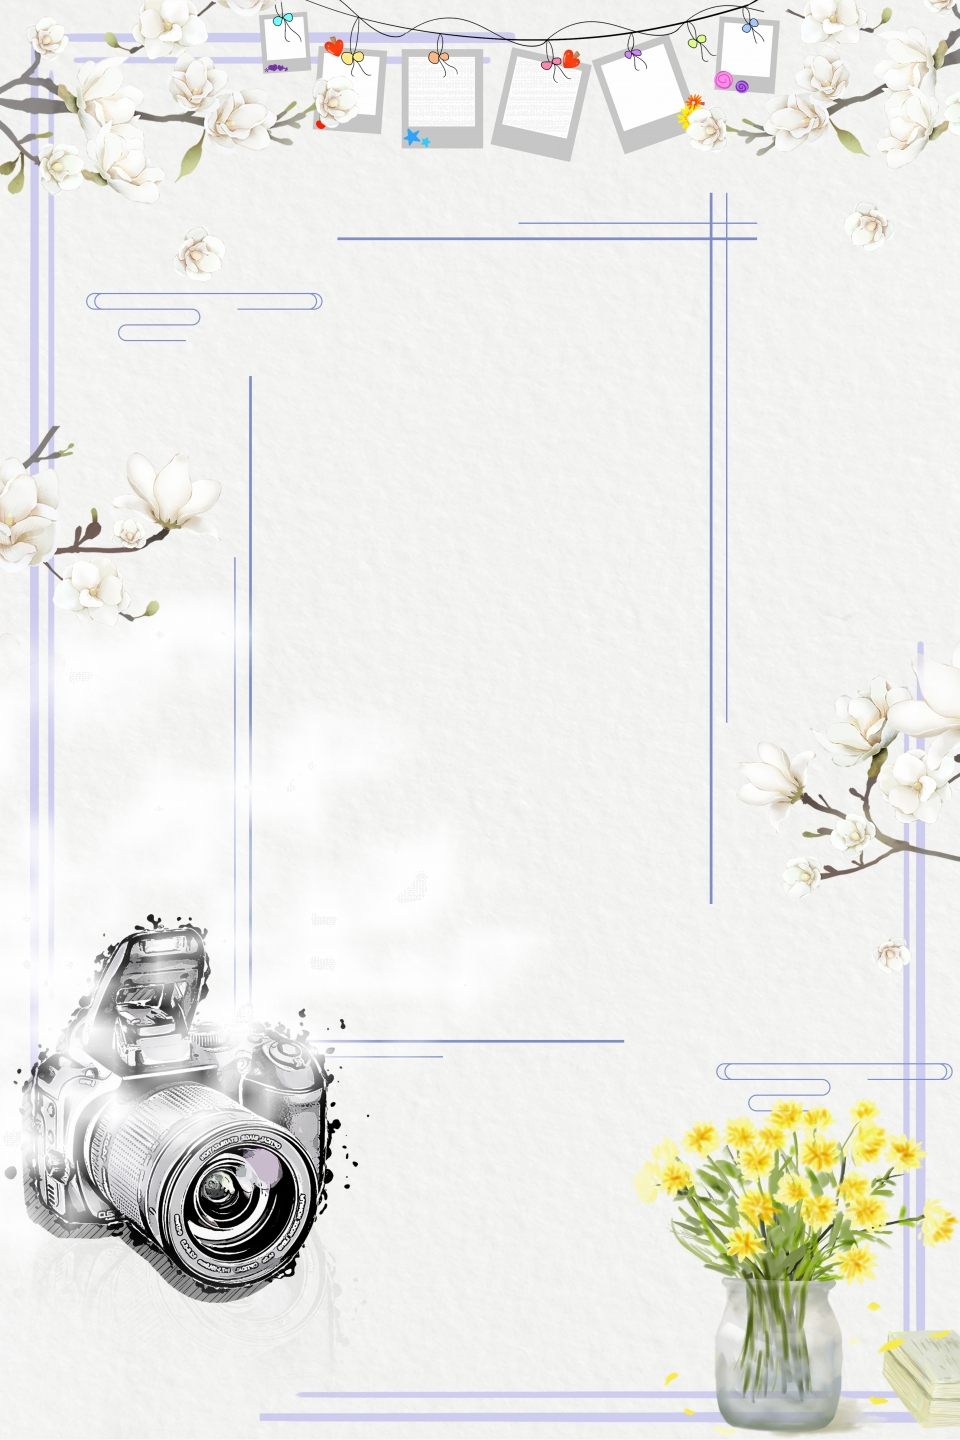 Literary Romantic Style Photography Theme Poster Background Illustration Photo Studio General Promotional Posters Photographer Contest Background Image For Free Download